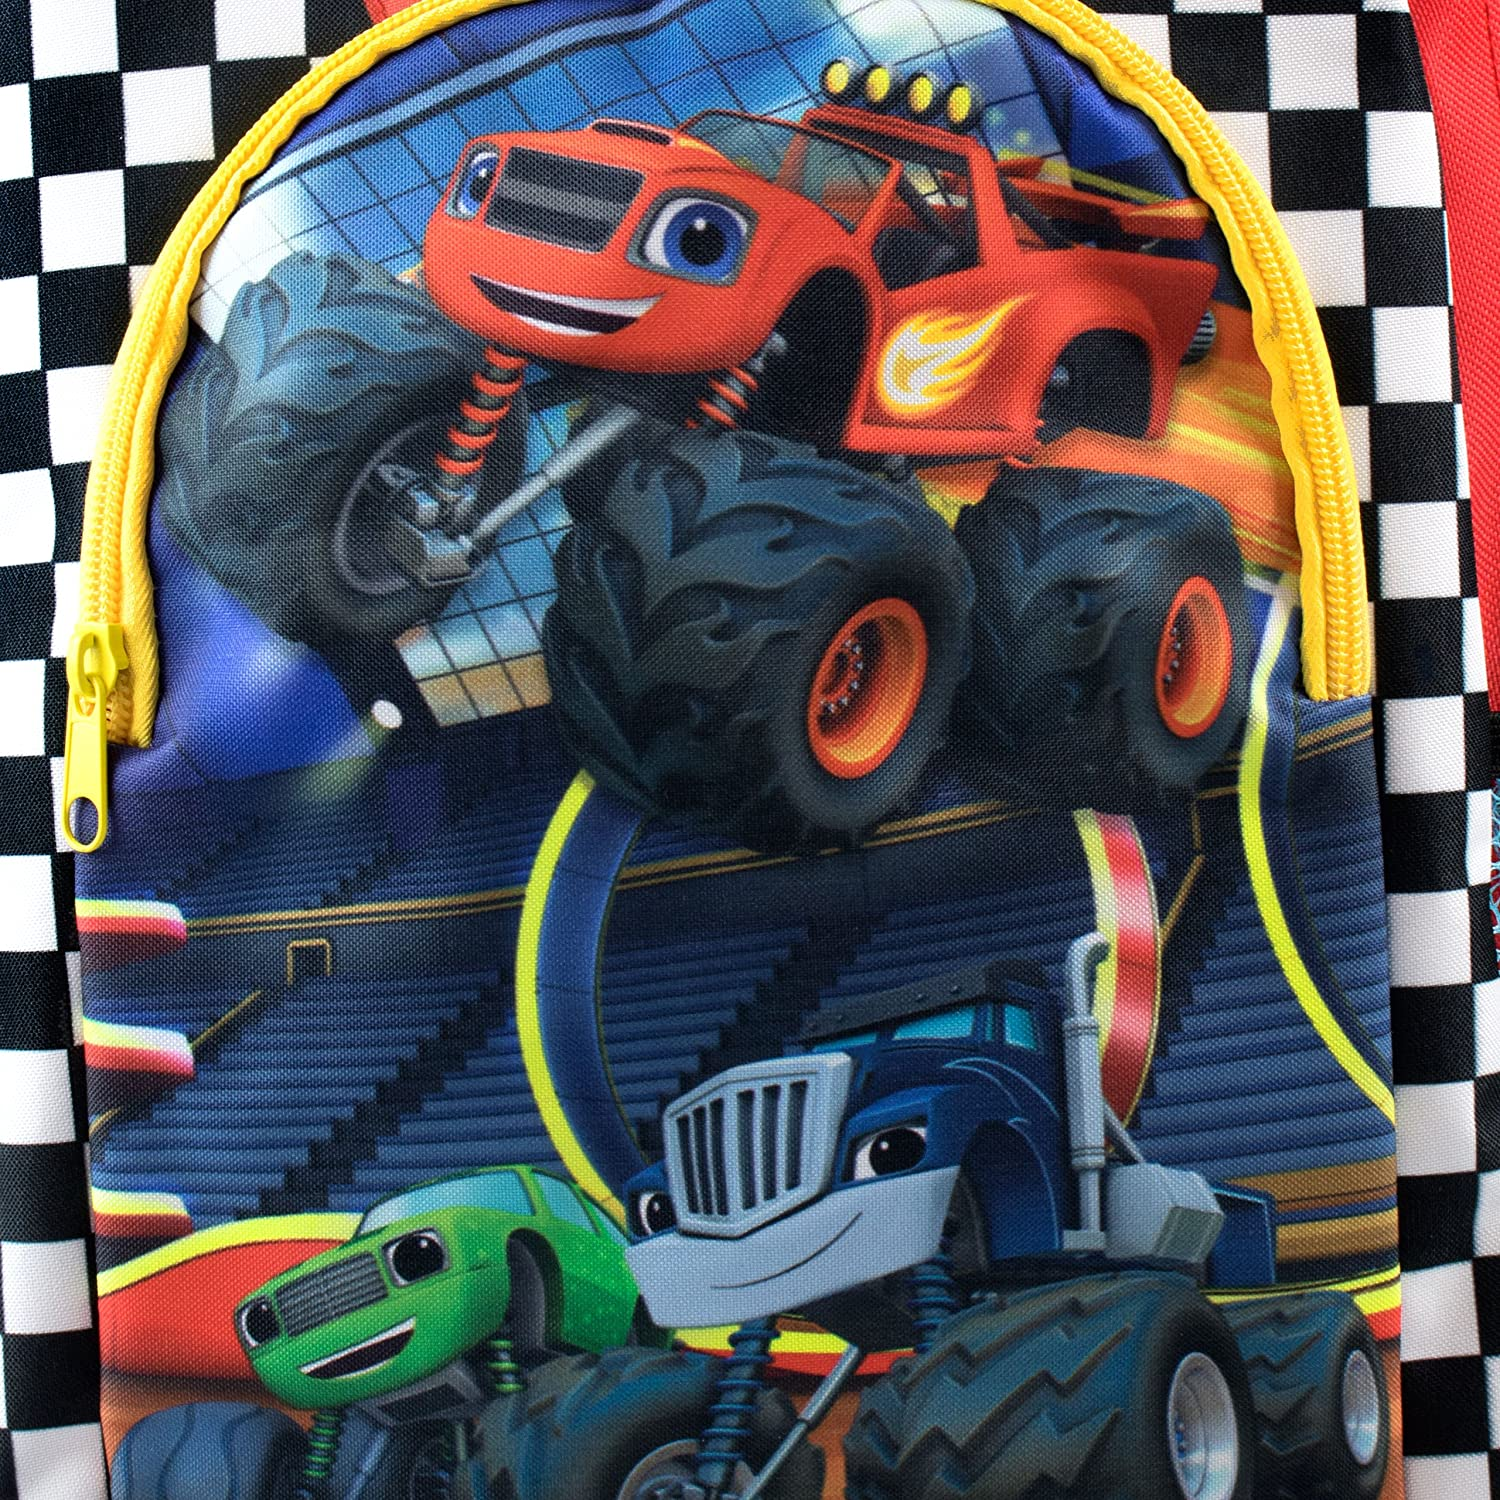 Blaze y los Monster Machines - Mochila para niños - Blaze and the Monster Machines: Amazon.es: Equipaje